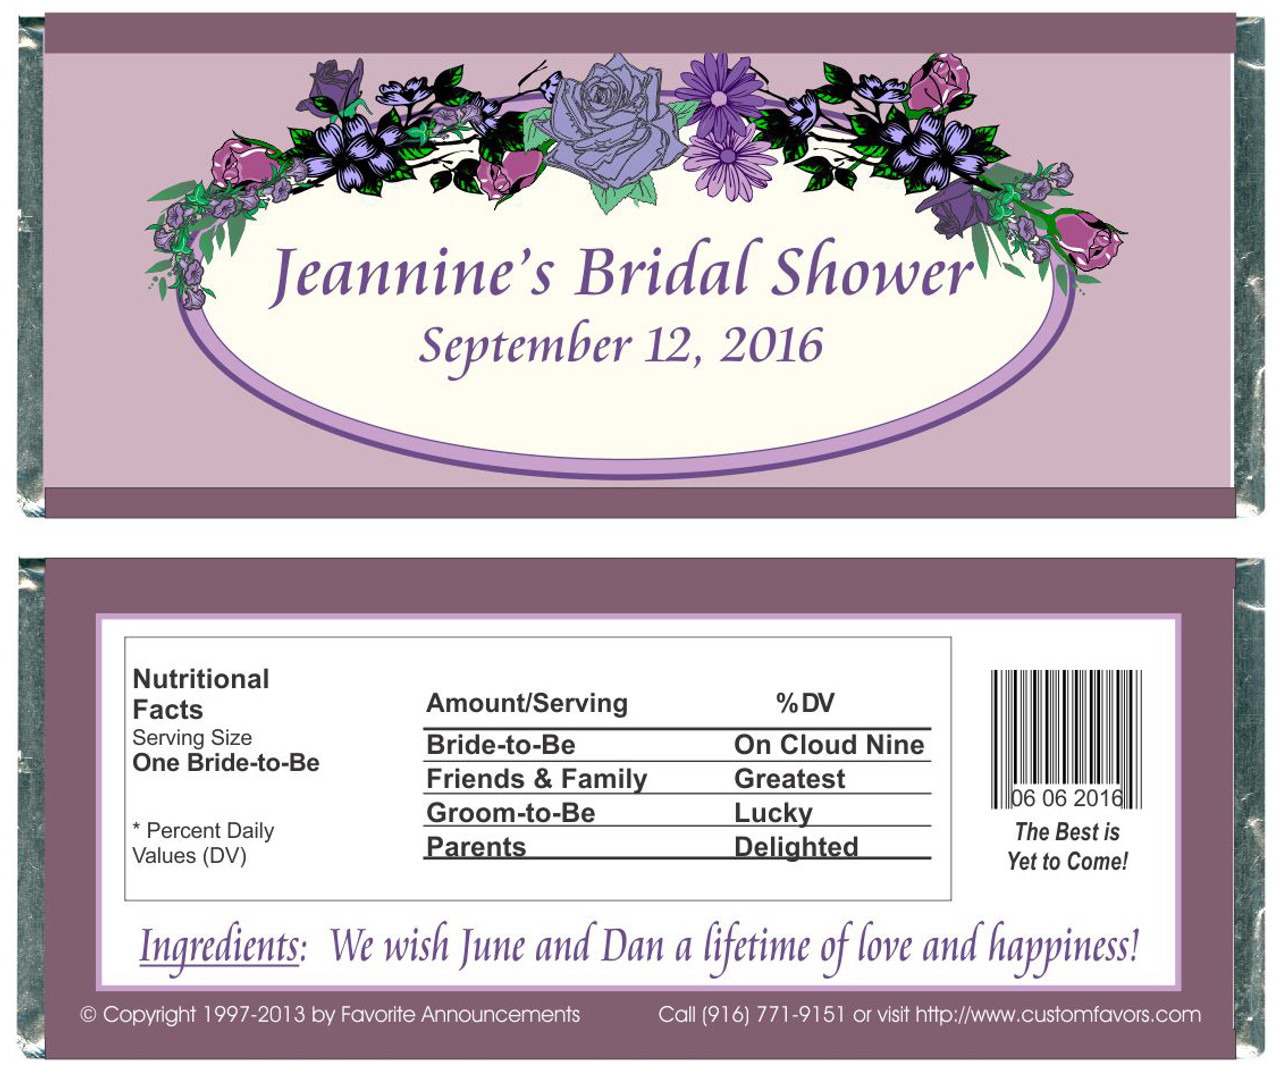 Bridal Shower Flowers Wrappers Favorite Announcements